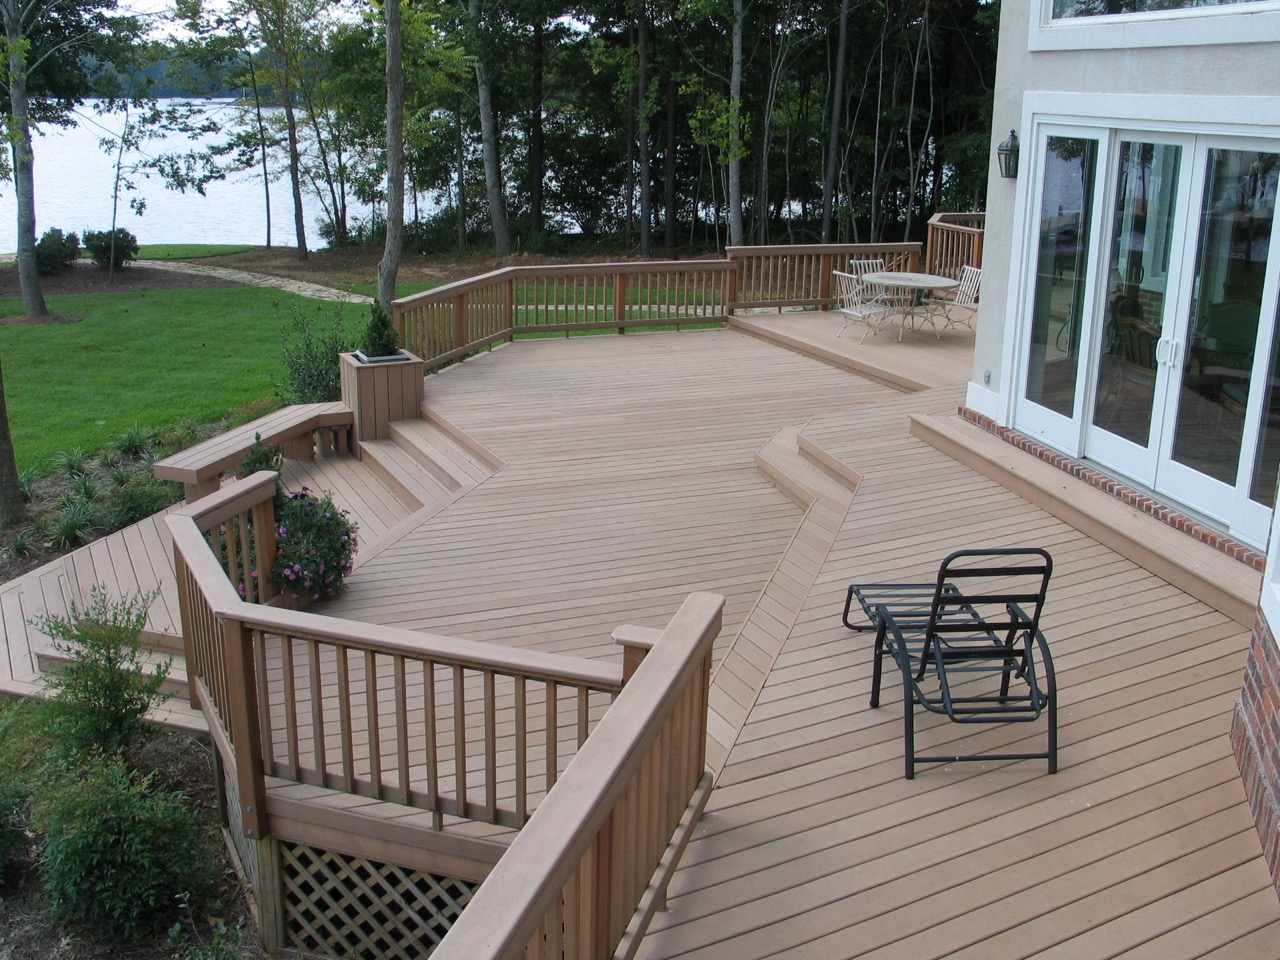 Deck Stairs Ideas How To Choose The Best Stair Design For Your Deck  St Louis decks screened